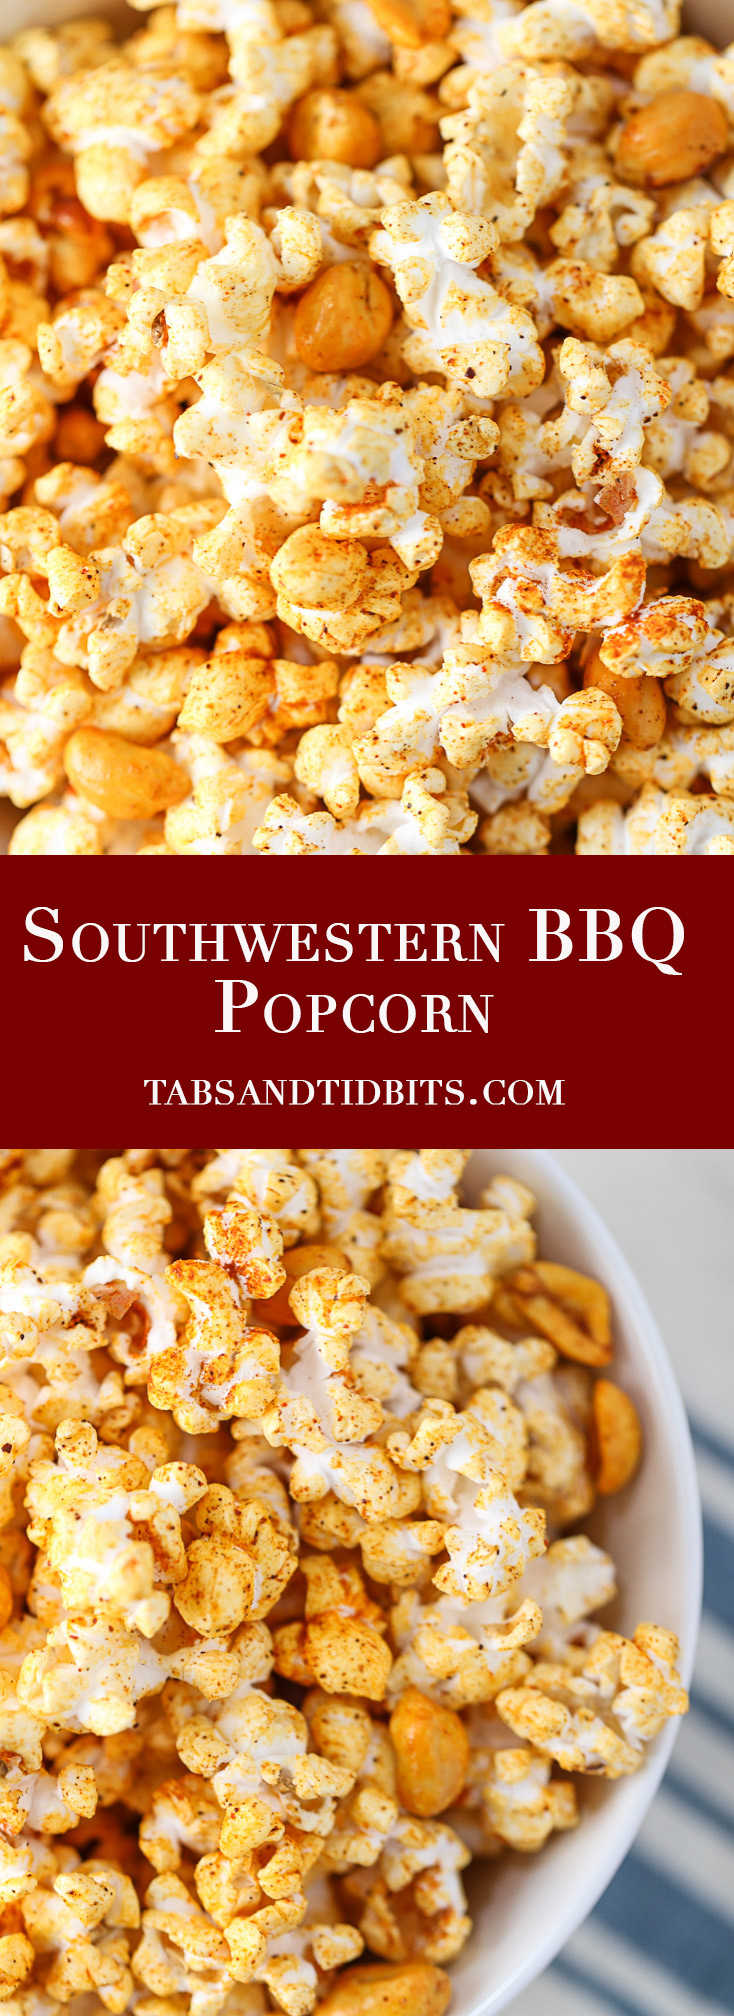 Southwestern BBQ Popcorn - A smoky bbq and buttery popcorn treat!